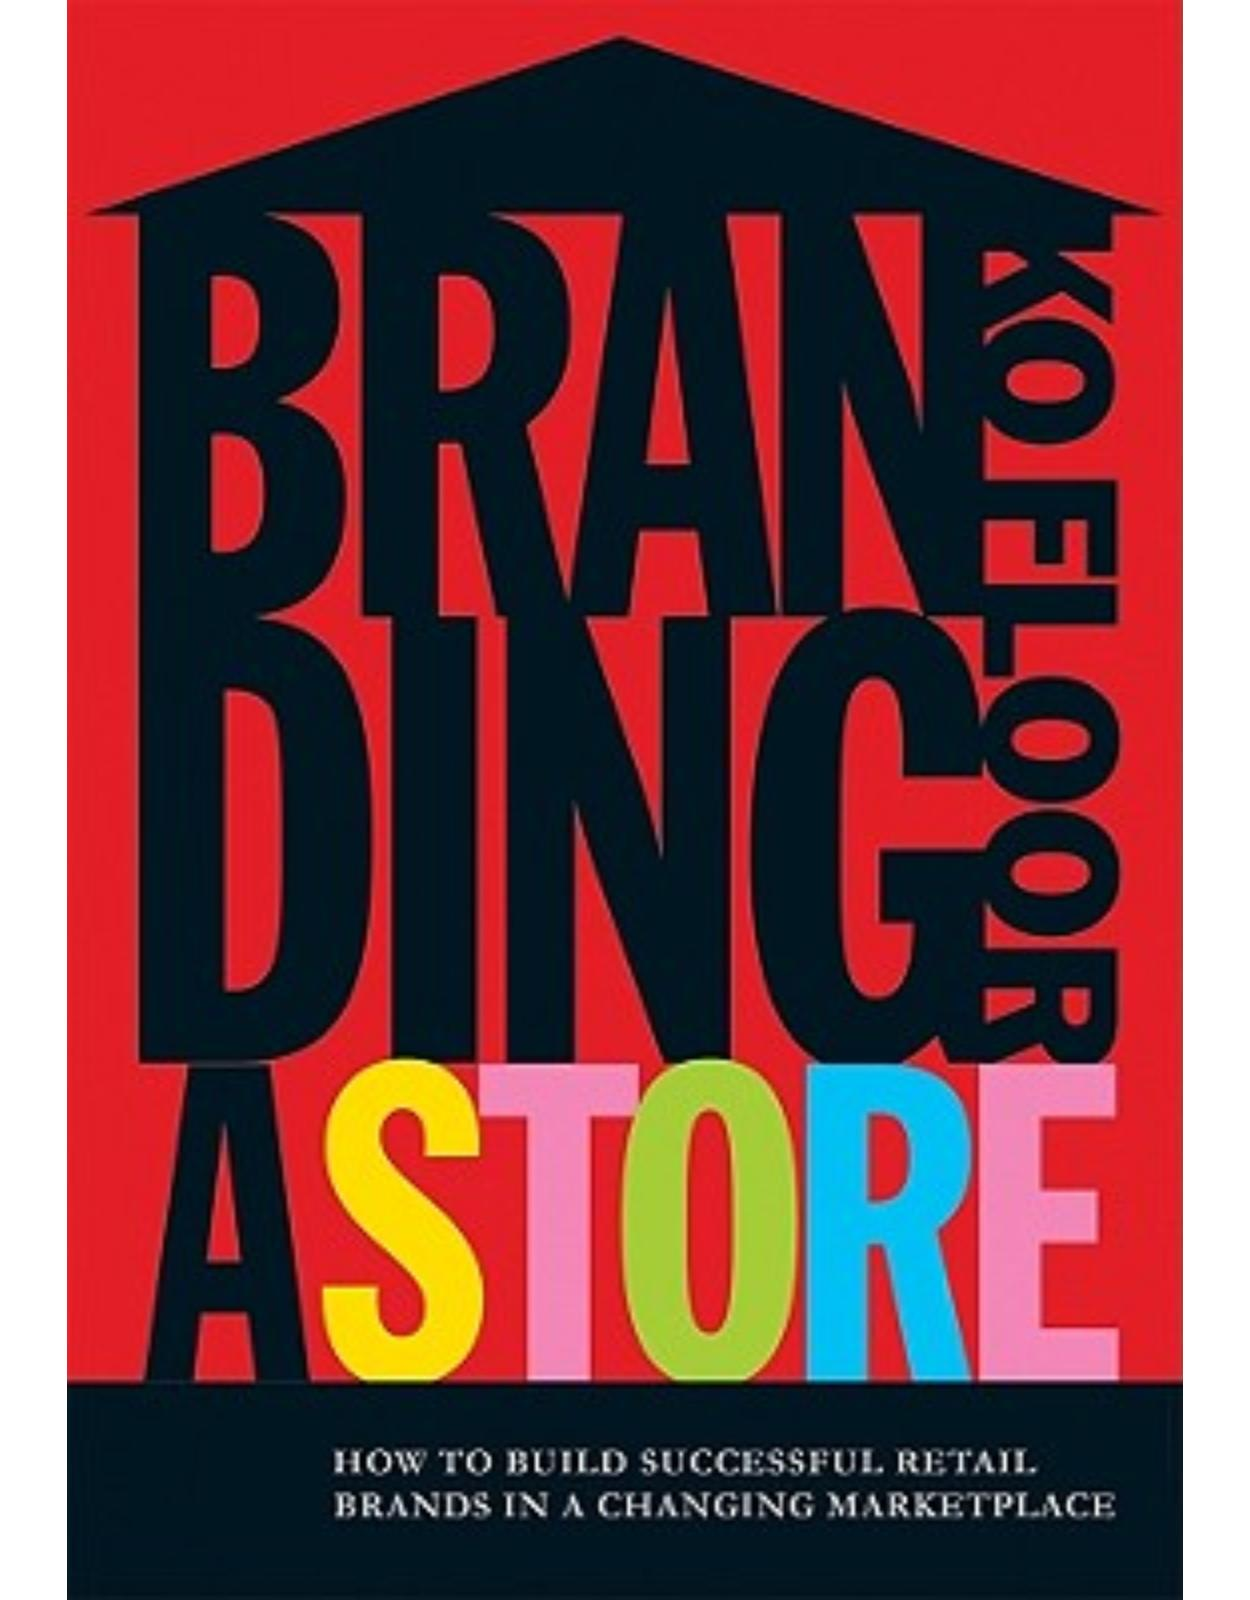 Branding a Store: How to Build Successful Retail Brands in a Changing